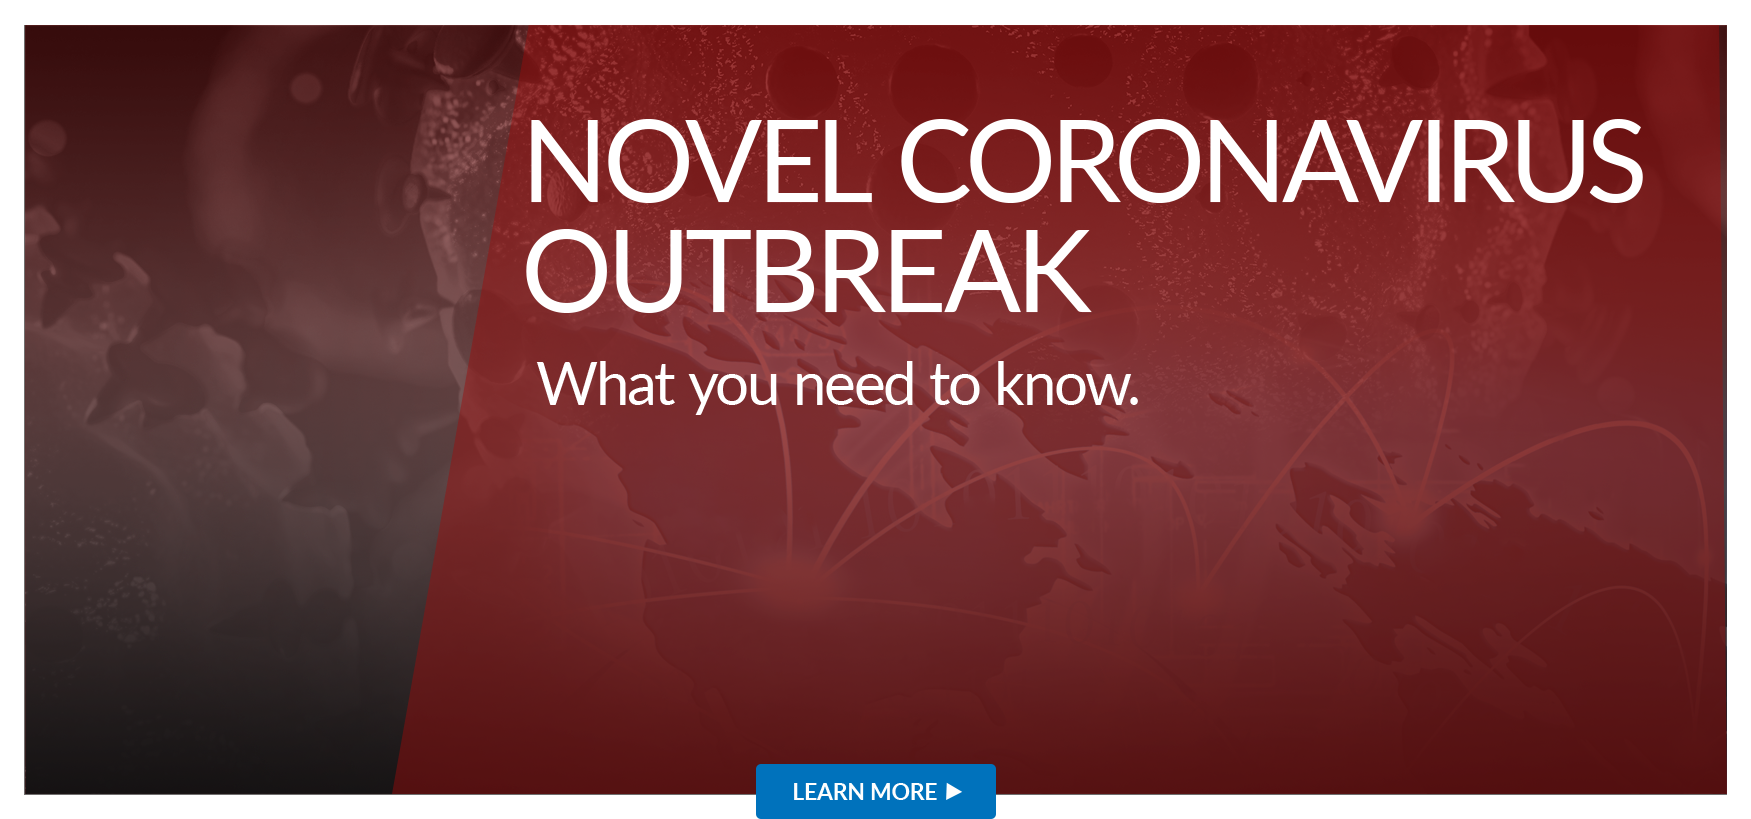 What you need to know about the Novel Coronavirus